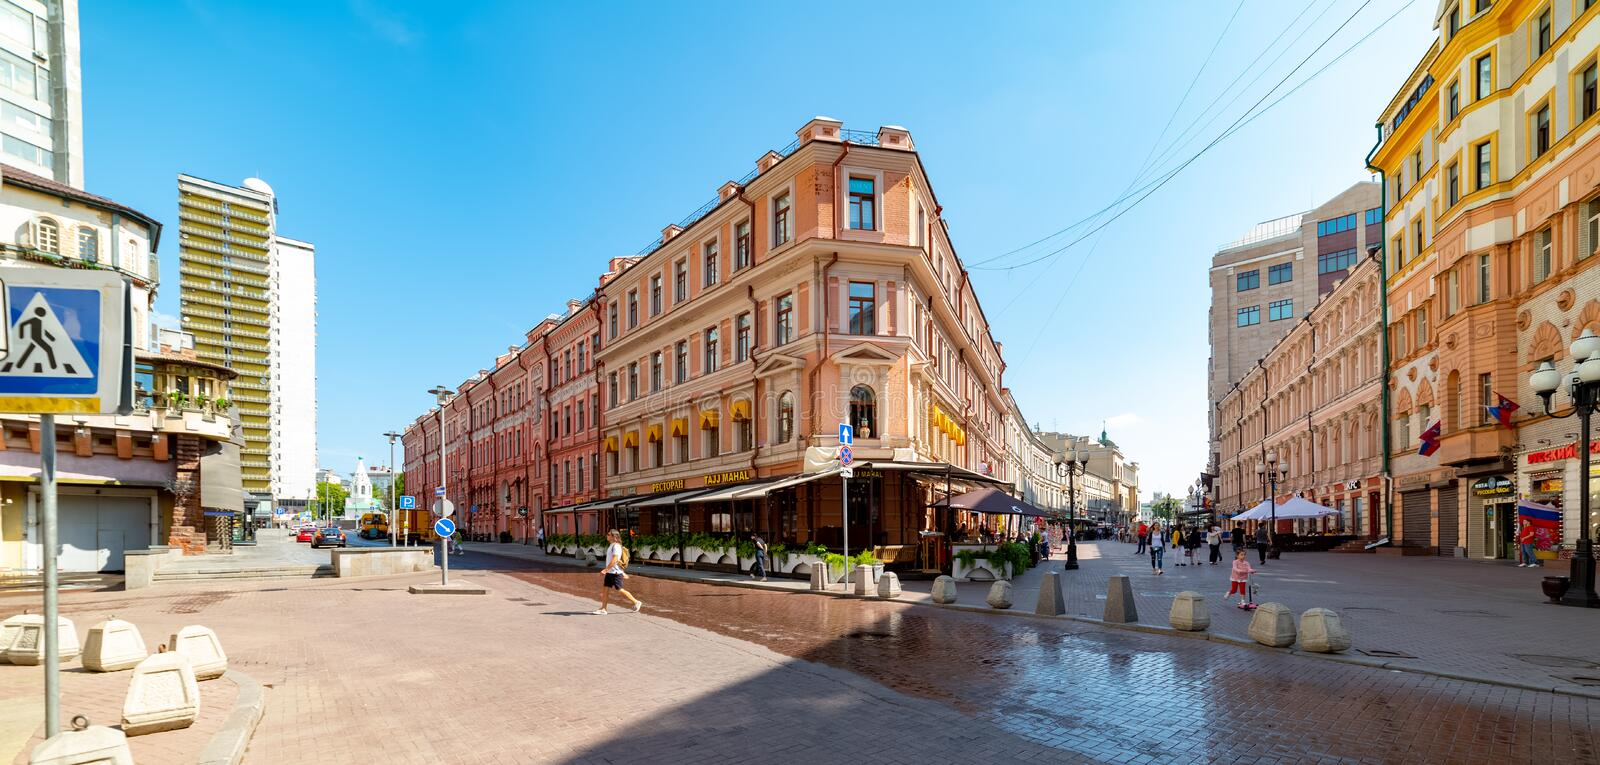 View of the Profitable house, V. K. Tishaninova, Arbat is one of the oldest streets in Moscow. City the Moscow .view of the Profitable house, V. K. Tishaninova royalty free stock photography